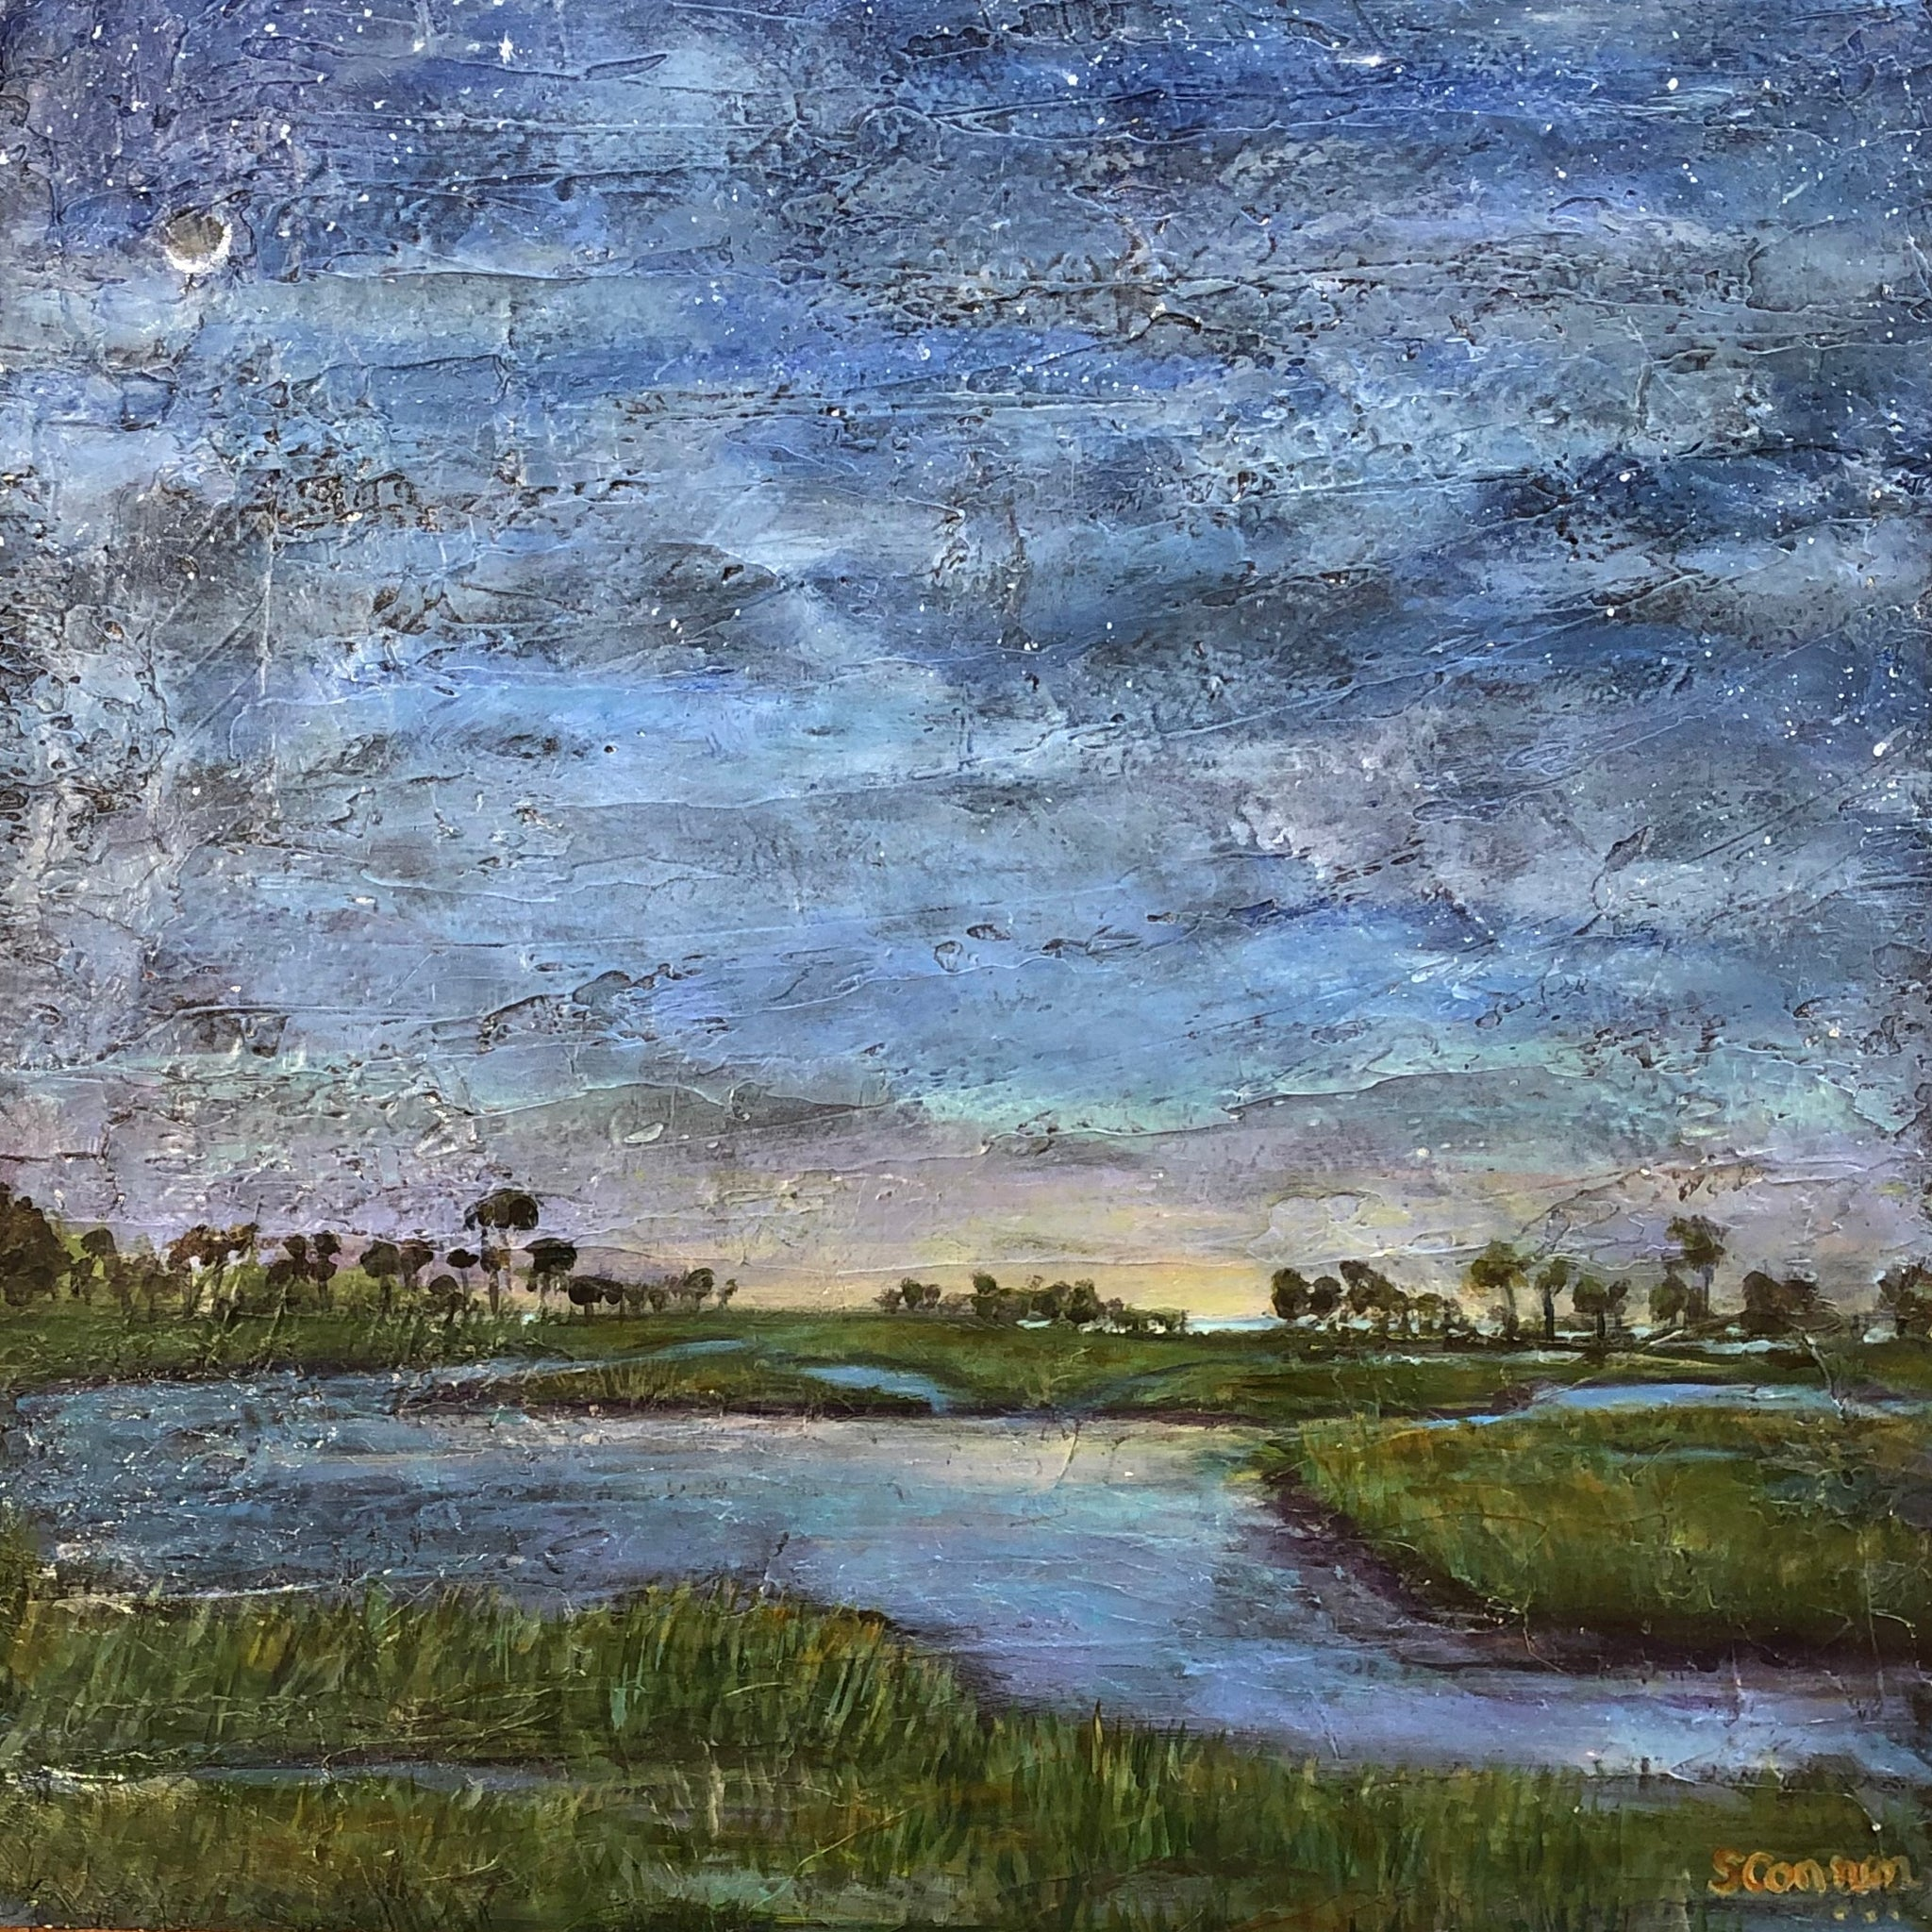 Pictured is a square painting of grasslands with paths of water zig zagging across them. There are trees in the distance. The painting is textured.